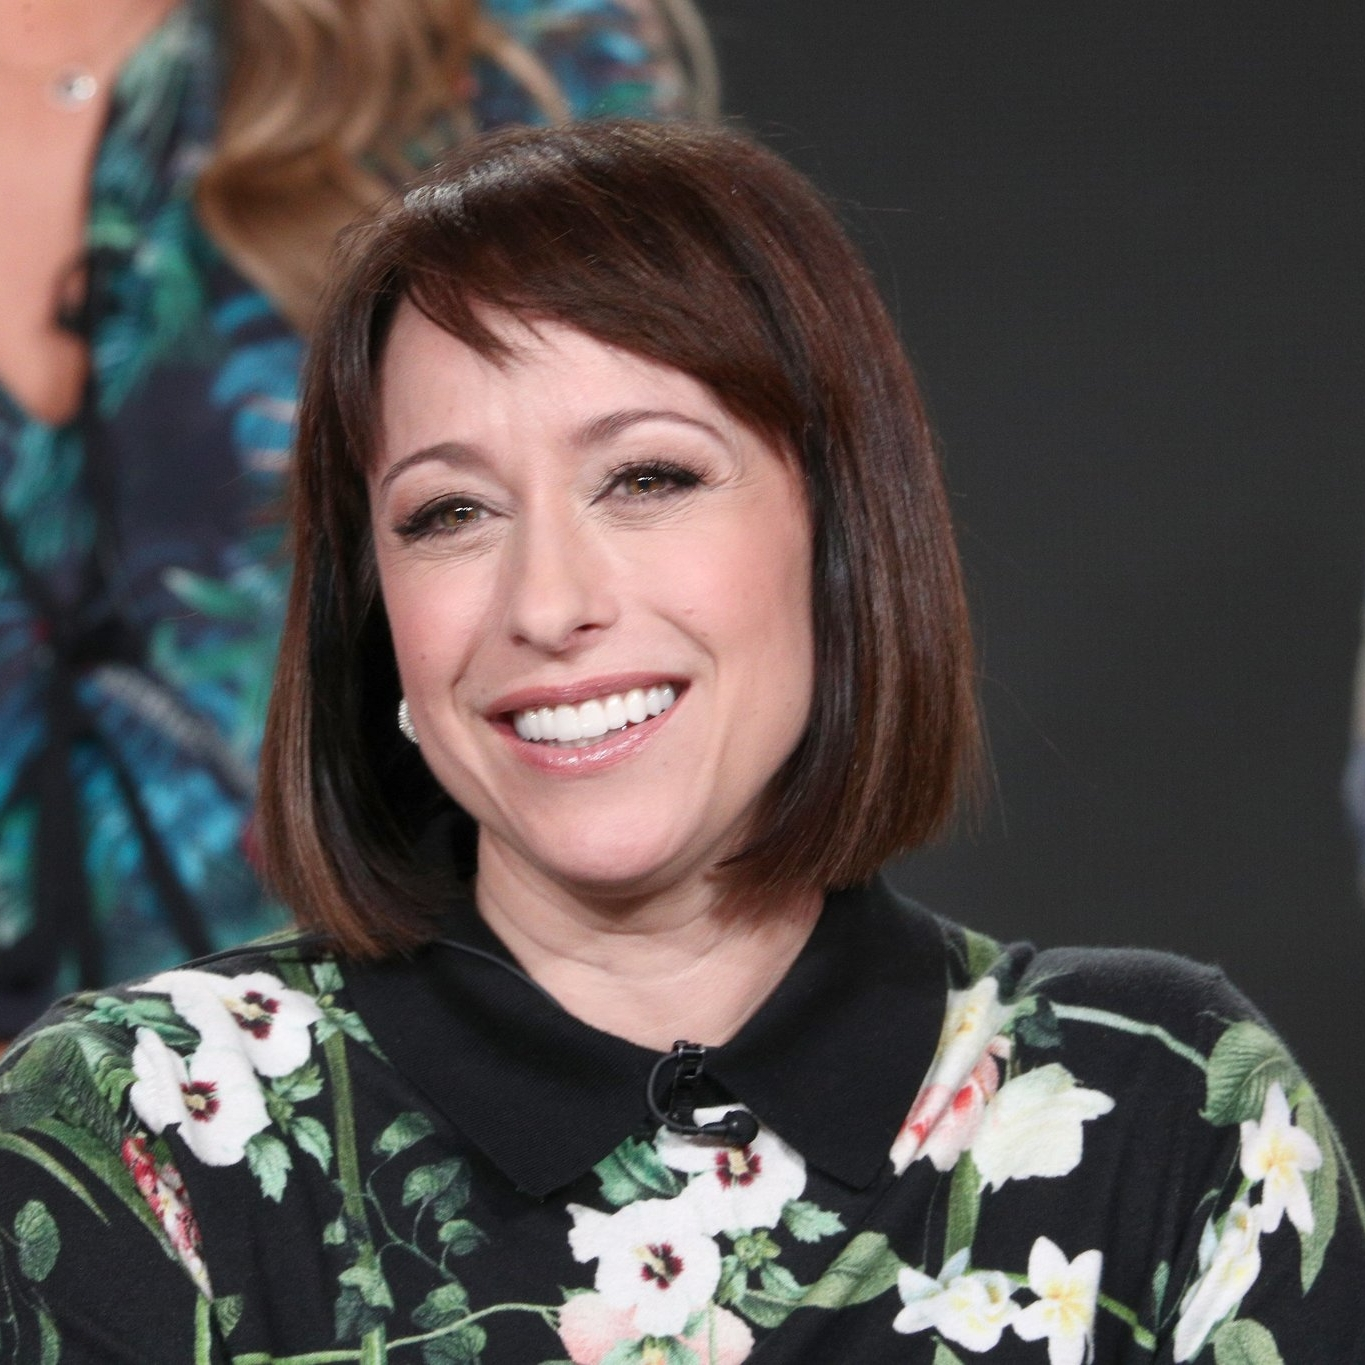 Paige Davis   Paige Davis hosted Trading Spaces on TLC from 2001-2008. She returned with the original cast for the revival of the show that had a successful 9th season with season 10 coming in 2019.